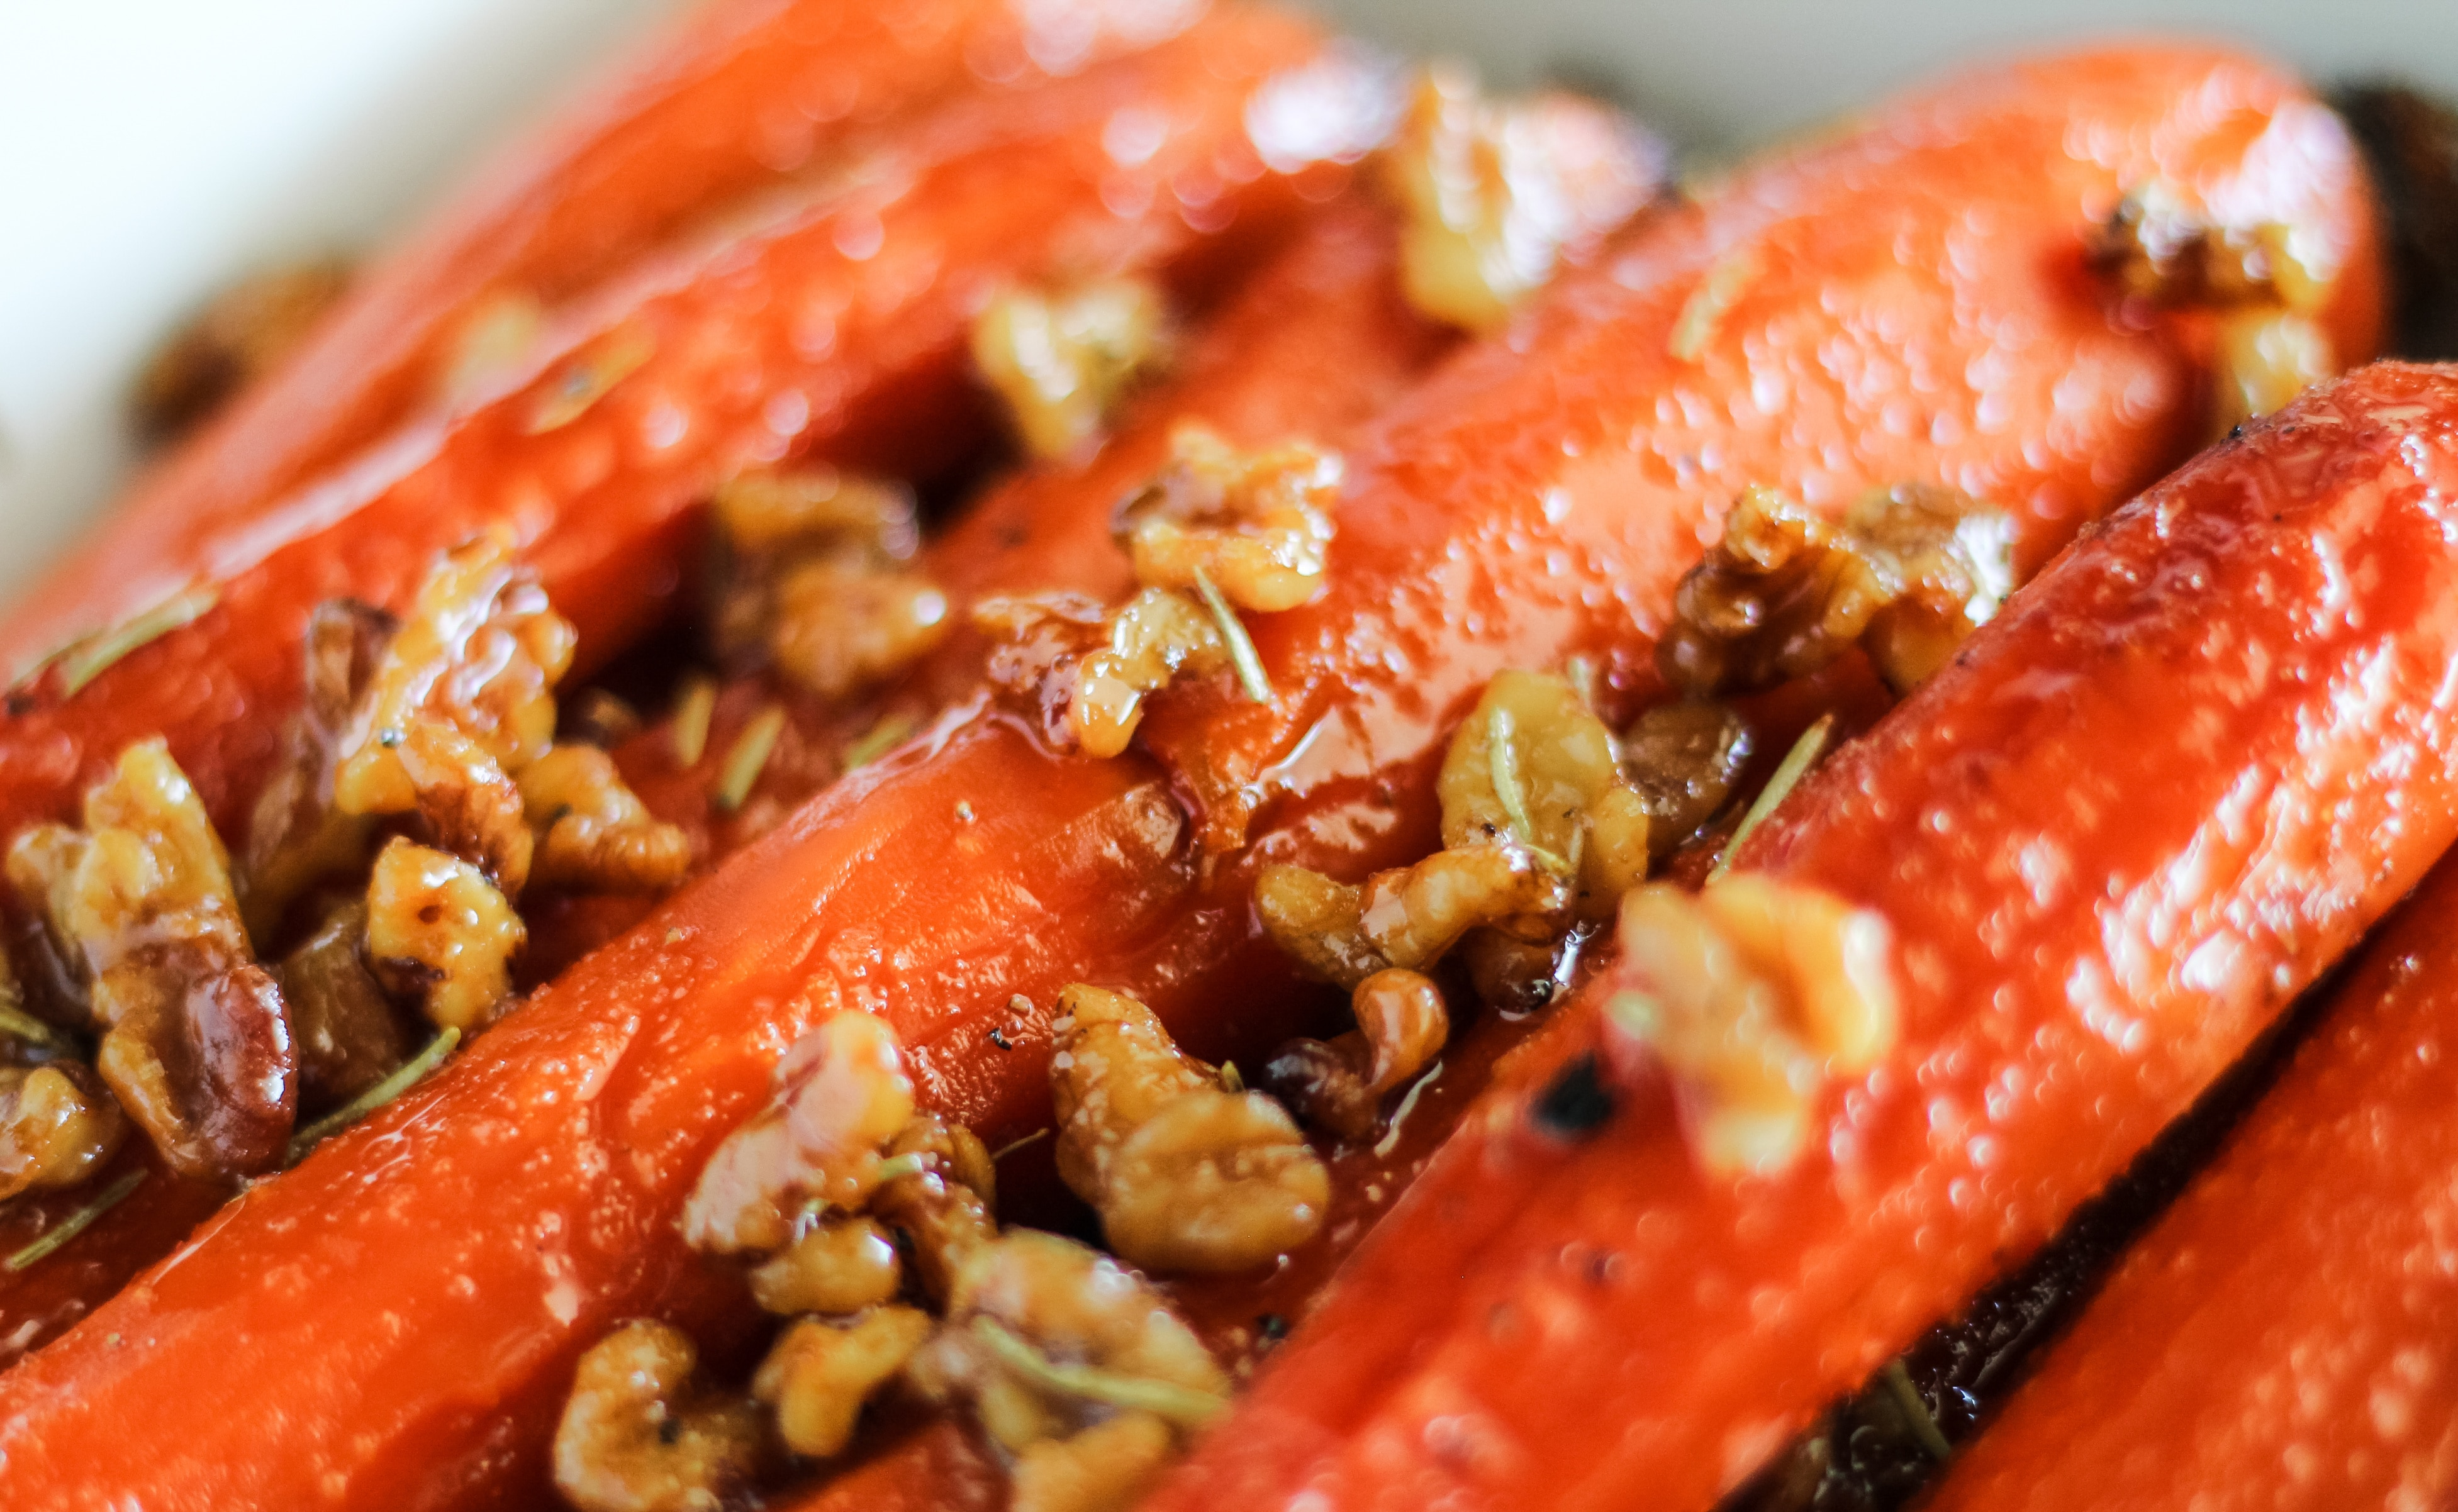 Honey and Maple Glazed Carrots garnished with walnuts and rosemary